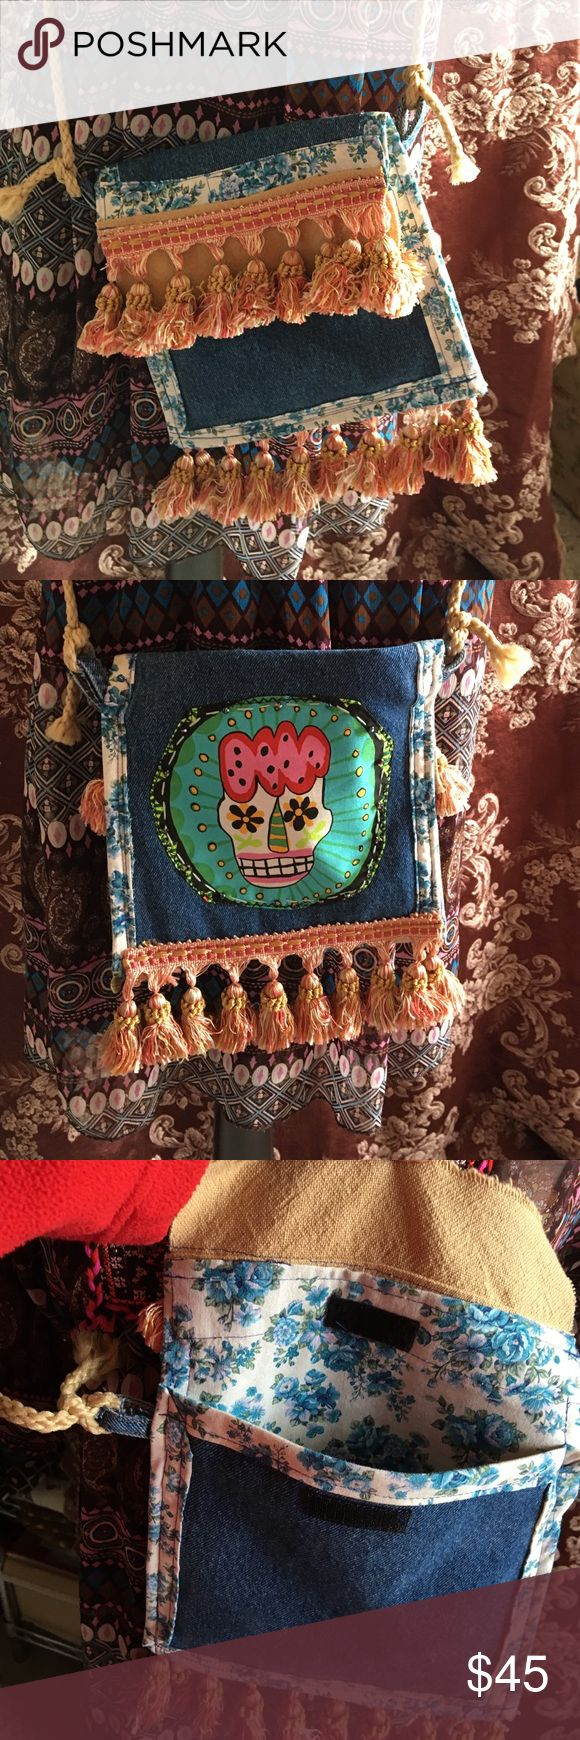 BoHo Hippie Festival Bag Day of the Dead Crossbody Handmade by me for my boutique. This is a one-of-a-kind festival cross body bag. Lots of Fringe & Tassels and fun details. This bag has an extra long rope handle that can be tied to make it different lengths. A Velcro closure for safekeeping of your items and an inside pocket. Day of the dead sugar skull design with hand beading details on one side and tassels and fringe on the other. Measurements 8 x 9 inches when closed and handle is very…